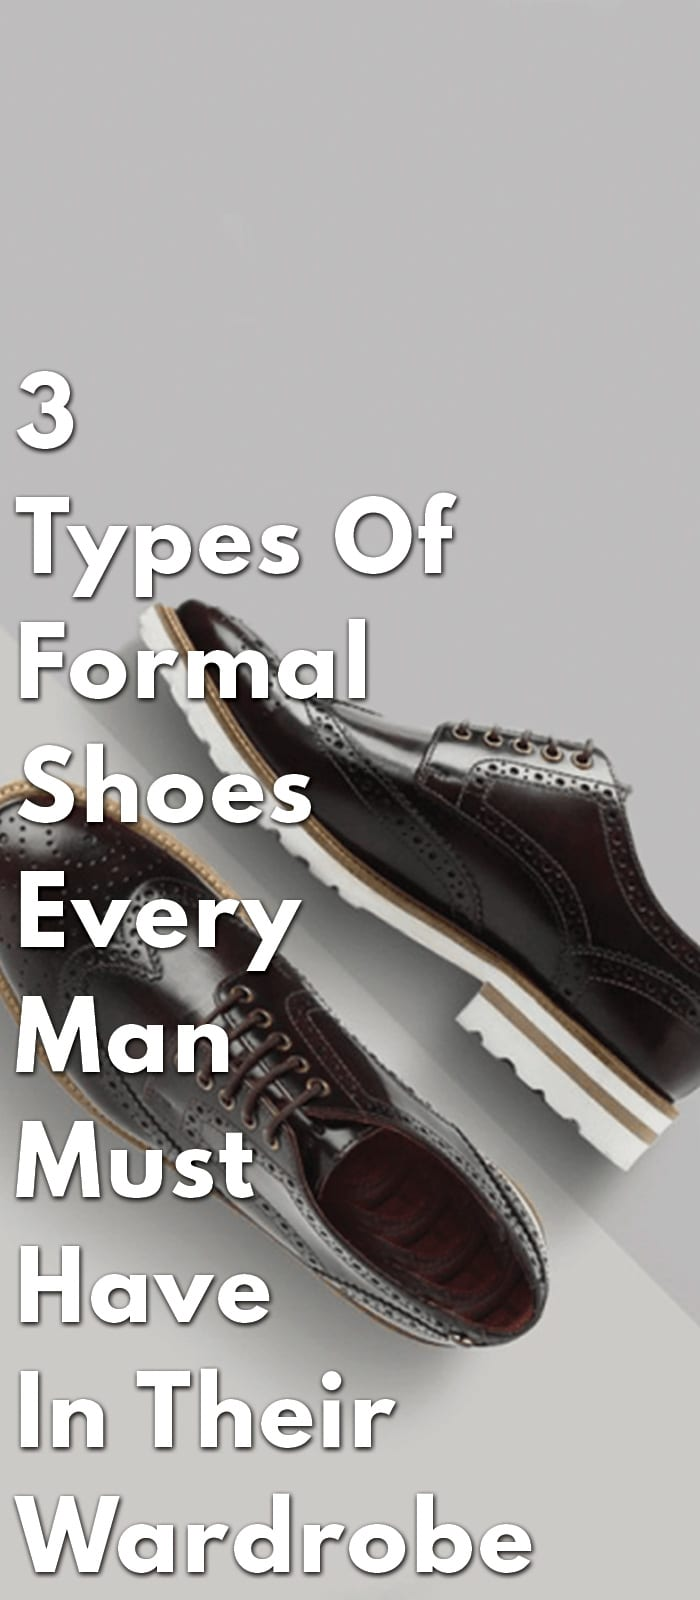 3-Types-Of-Formal-Shoes-Every-Man-Must-Have-In-Their-Wardrobe